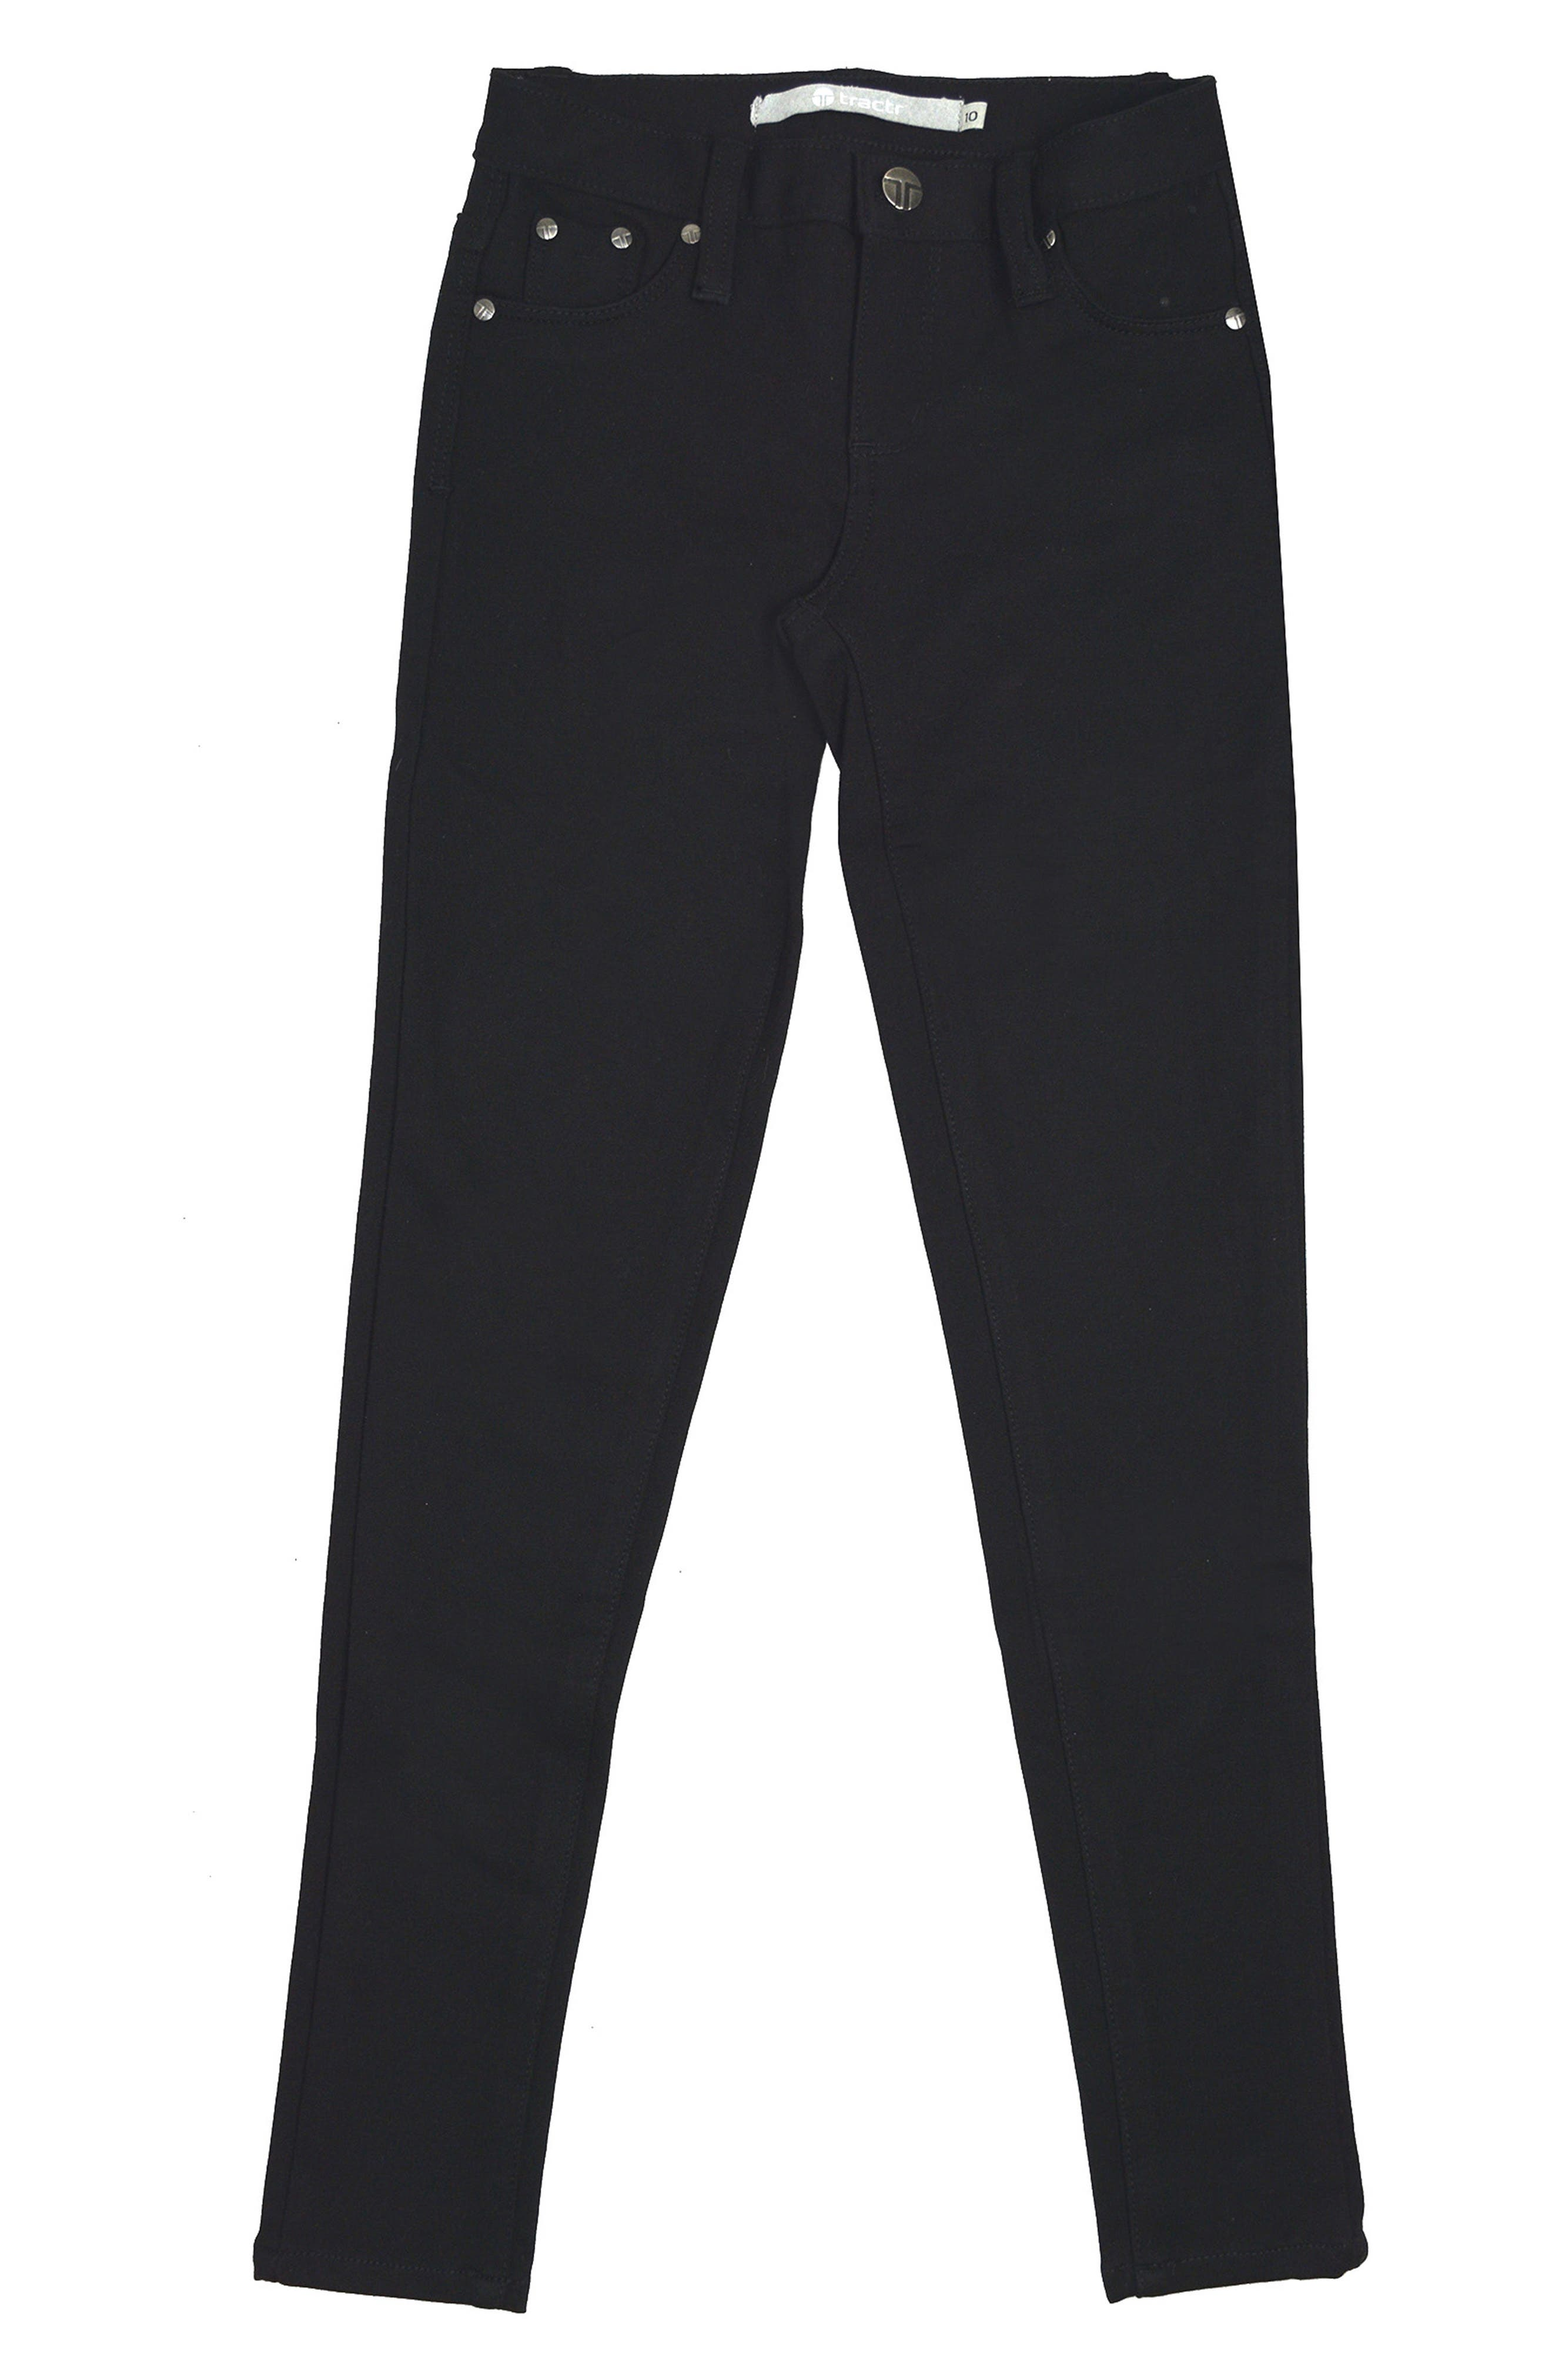 Tractr Ponte Skinny Jeans (Little Girls)